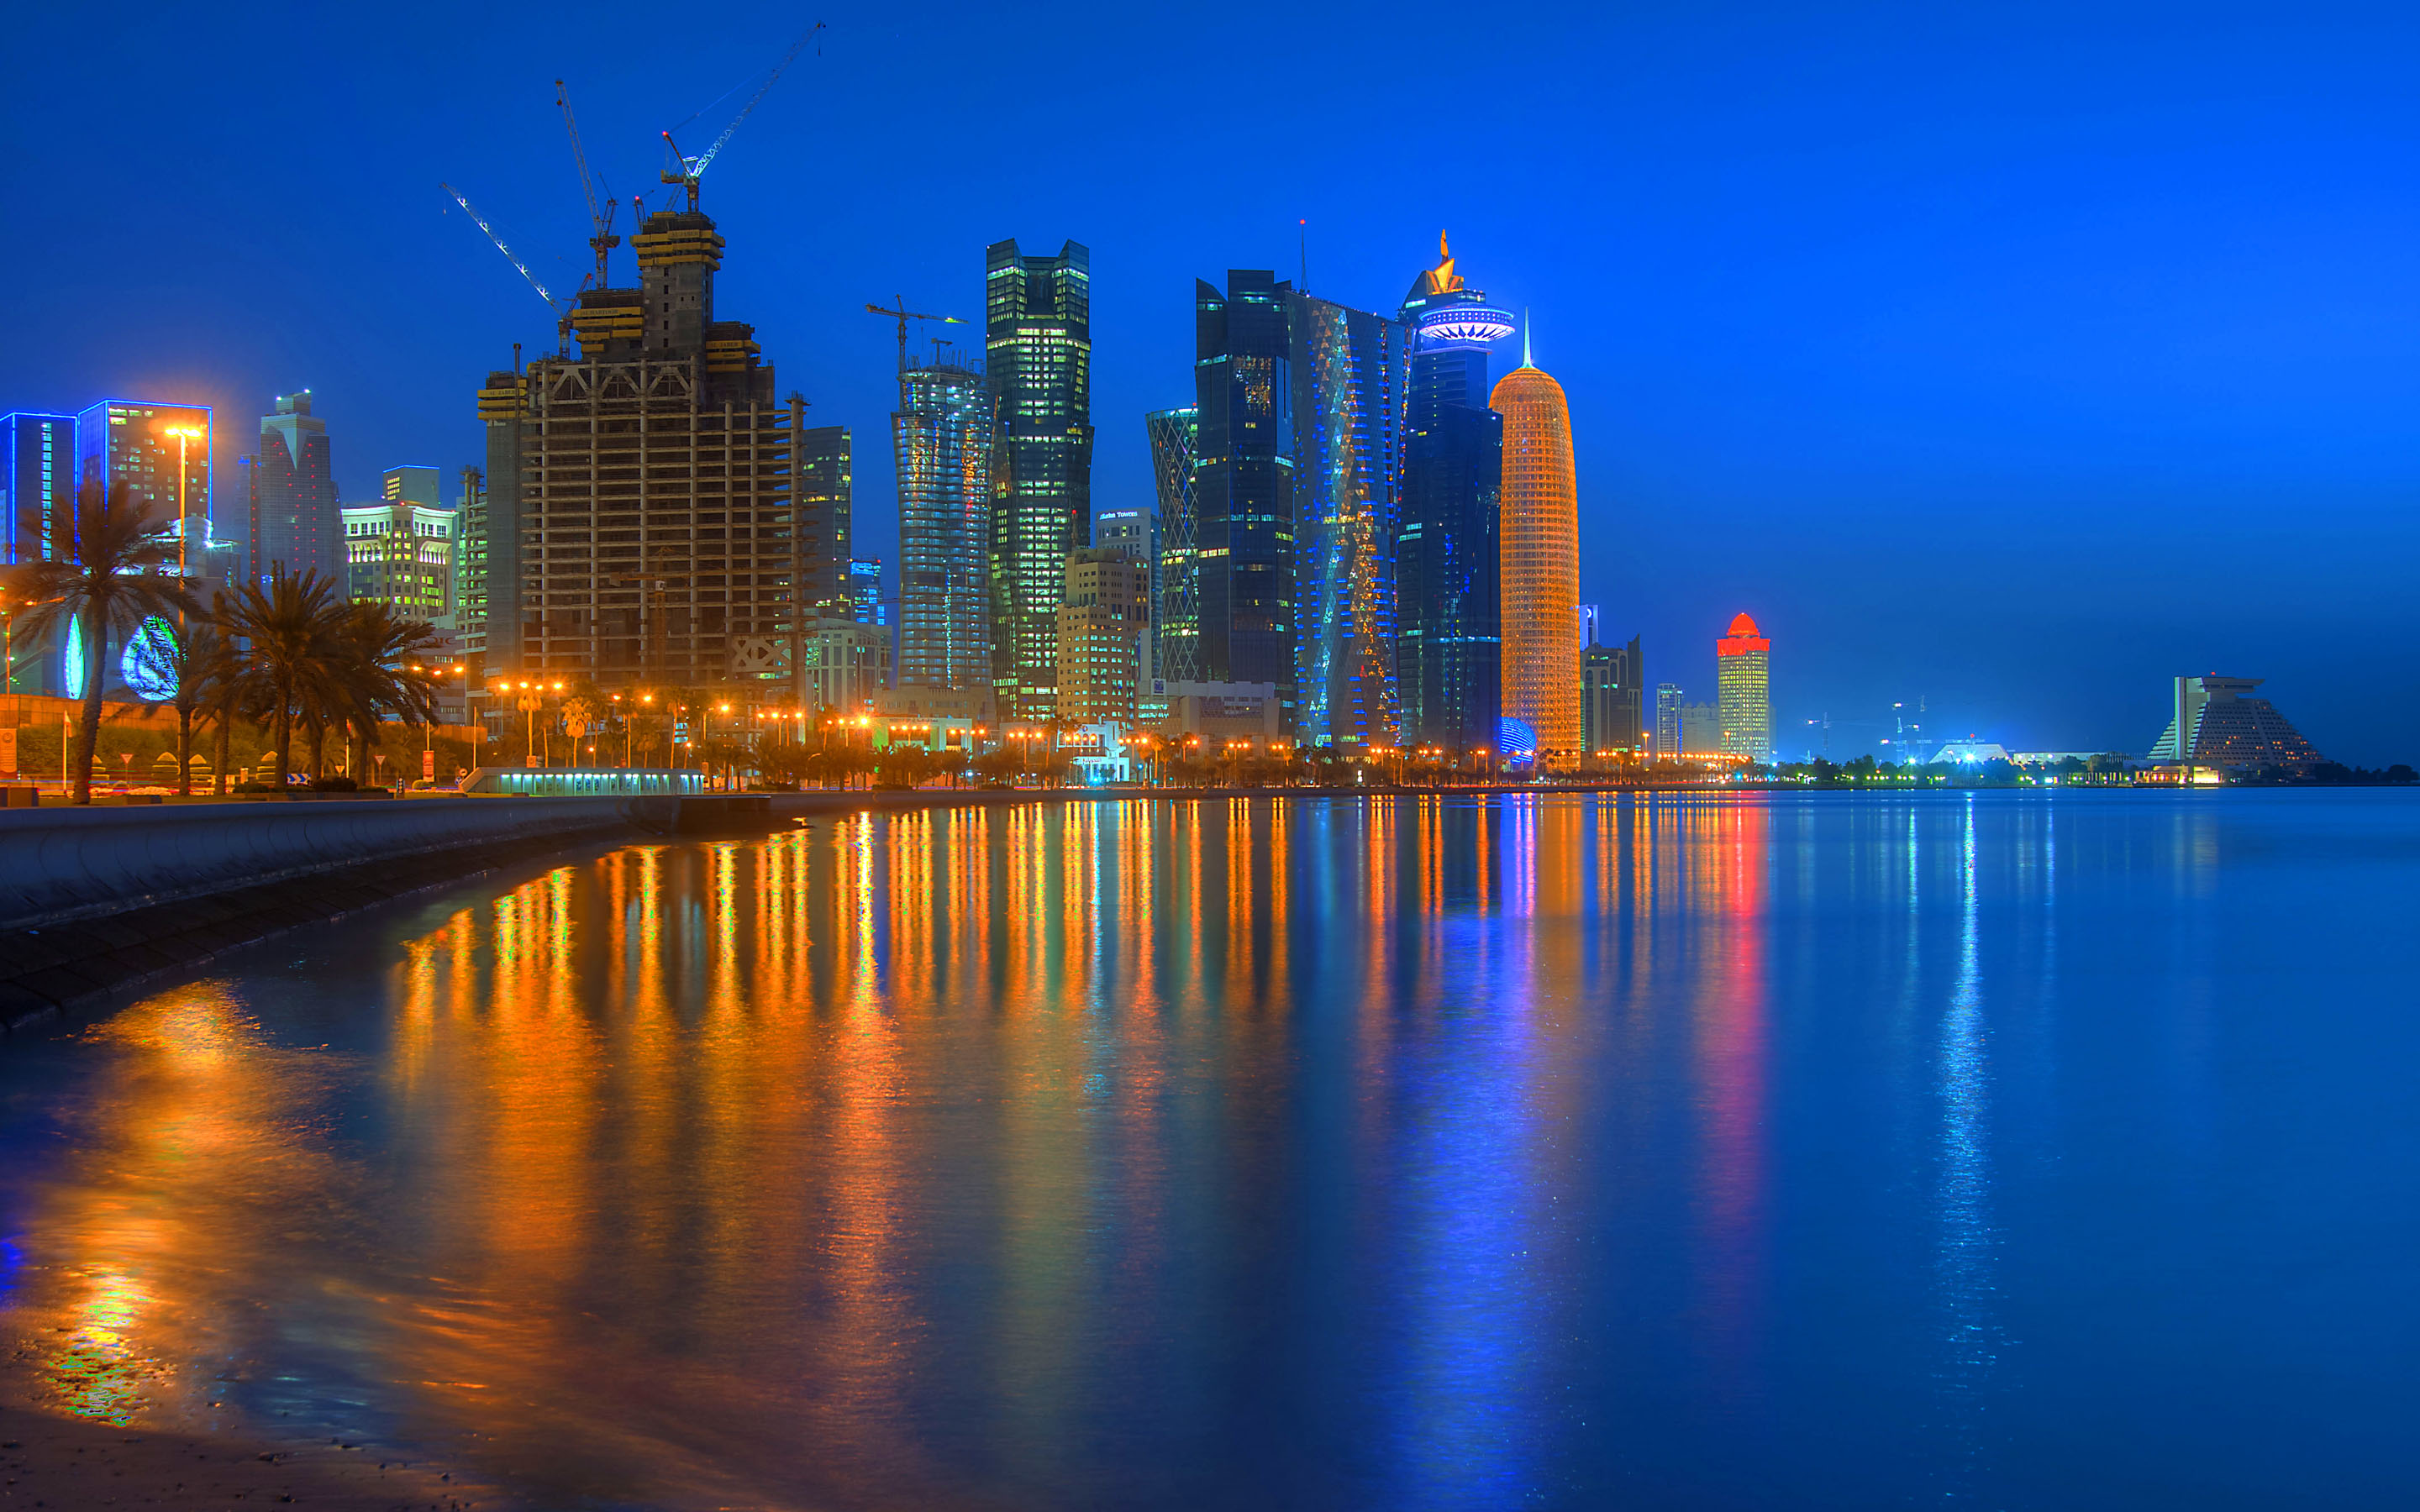 Doha HD Wallpaper   Background Image   2880x1800   ID:445421 - Wallpaper  Abyss